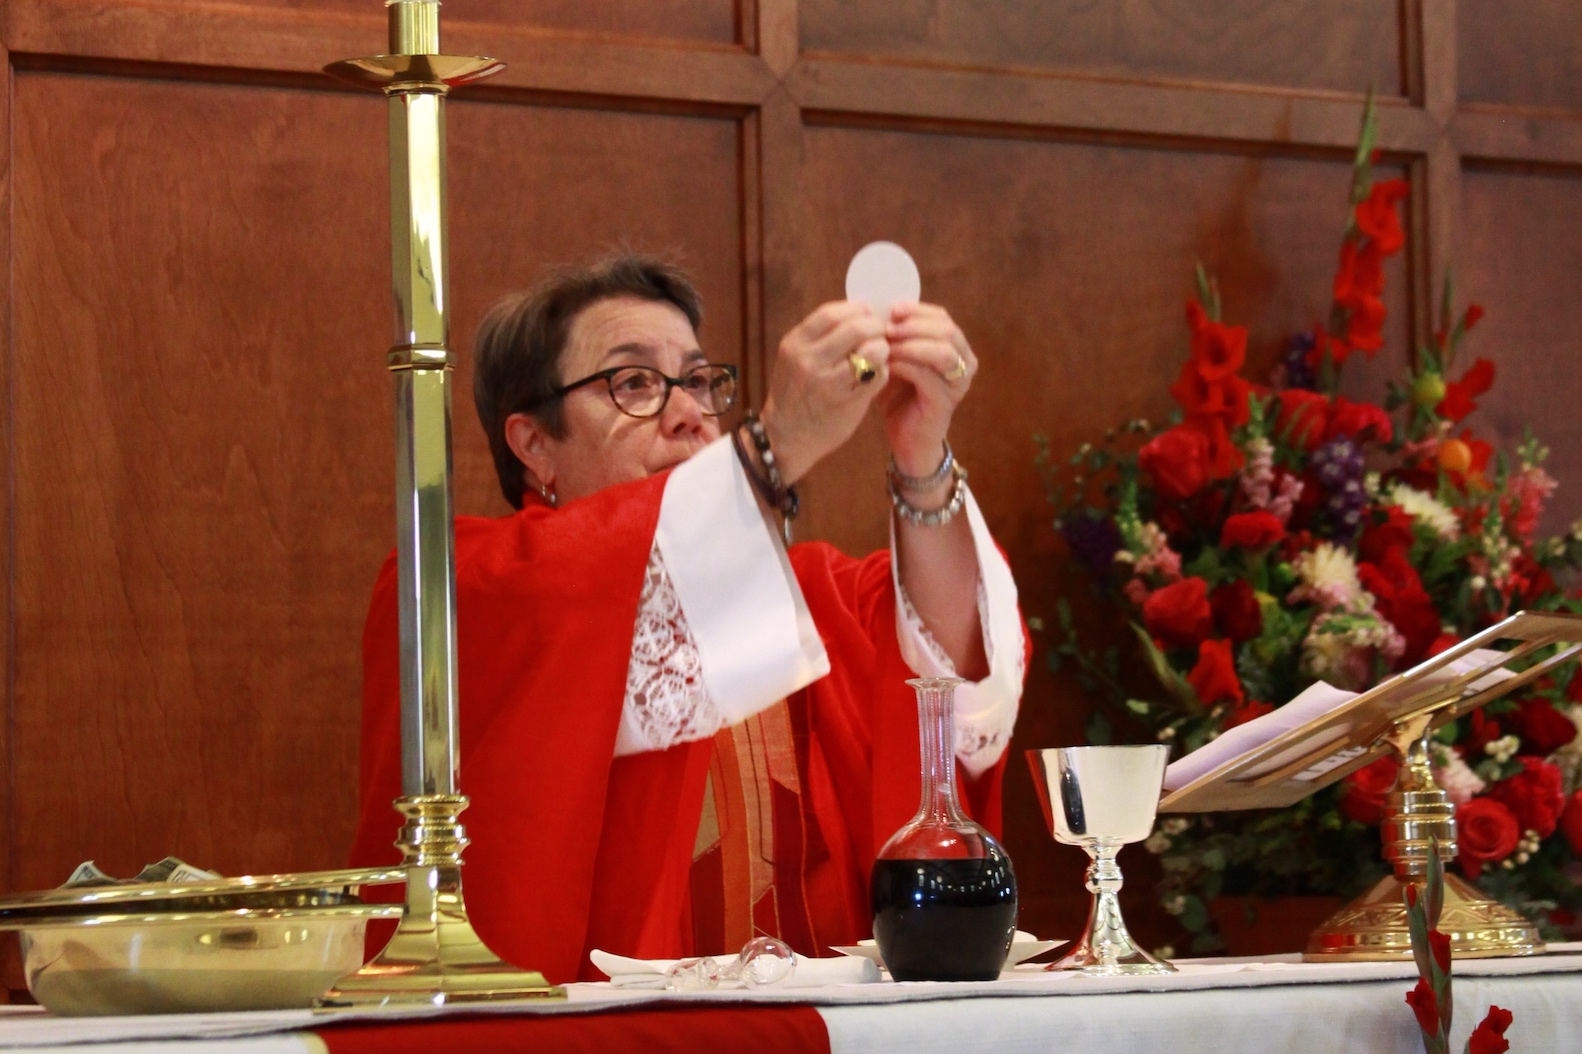 Receiving Communion - The Body and Blood of Christ